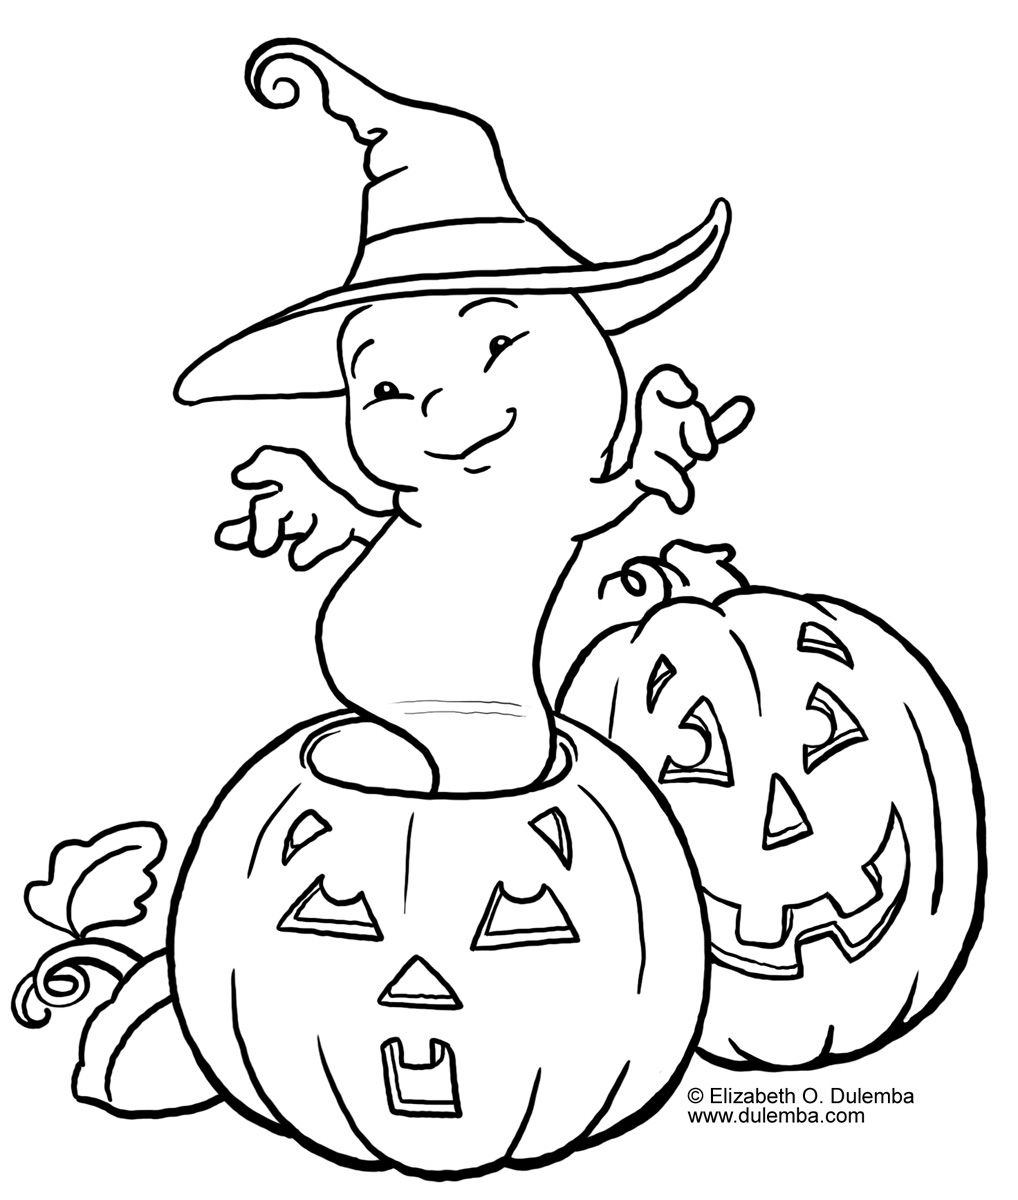 halloween pumpkin pictures to print and color fall pumpkin coloring pages printable get coloring pages pumpkin to halloween color print and pictures